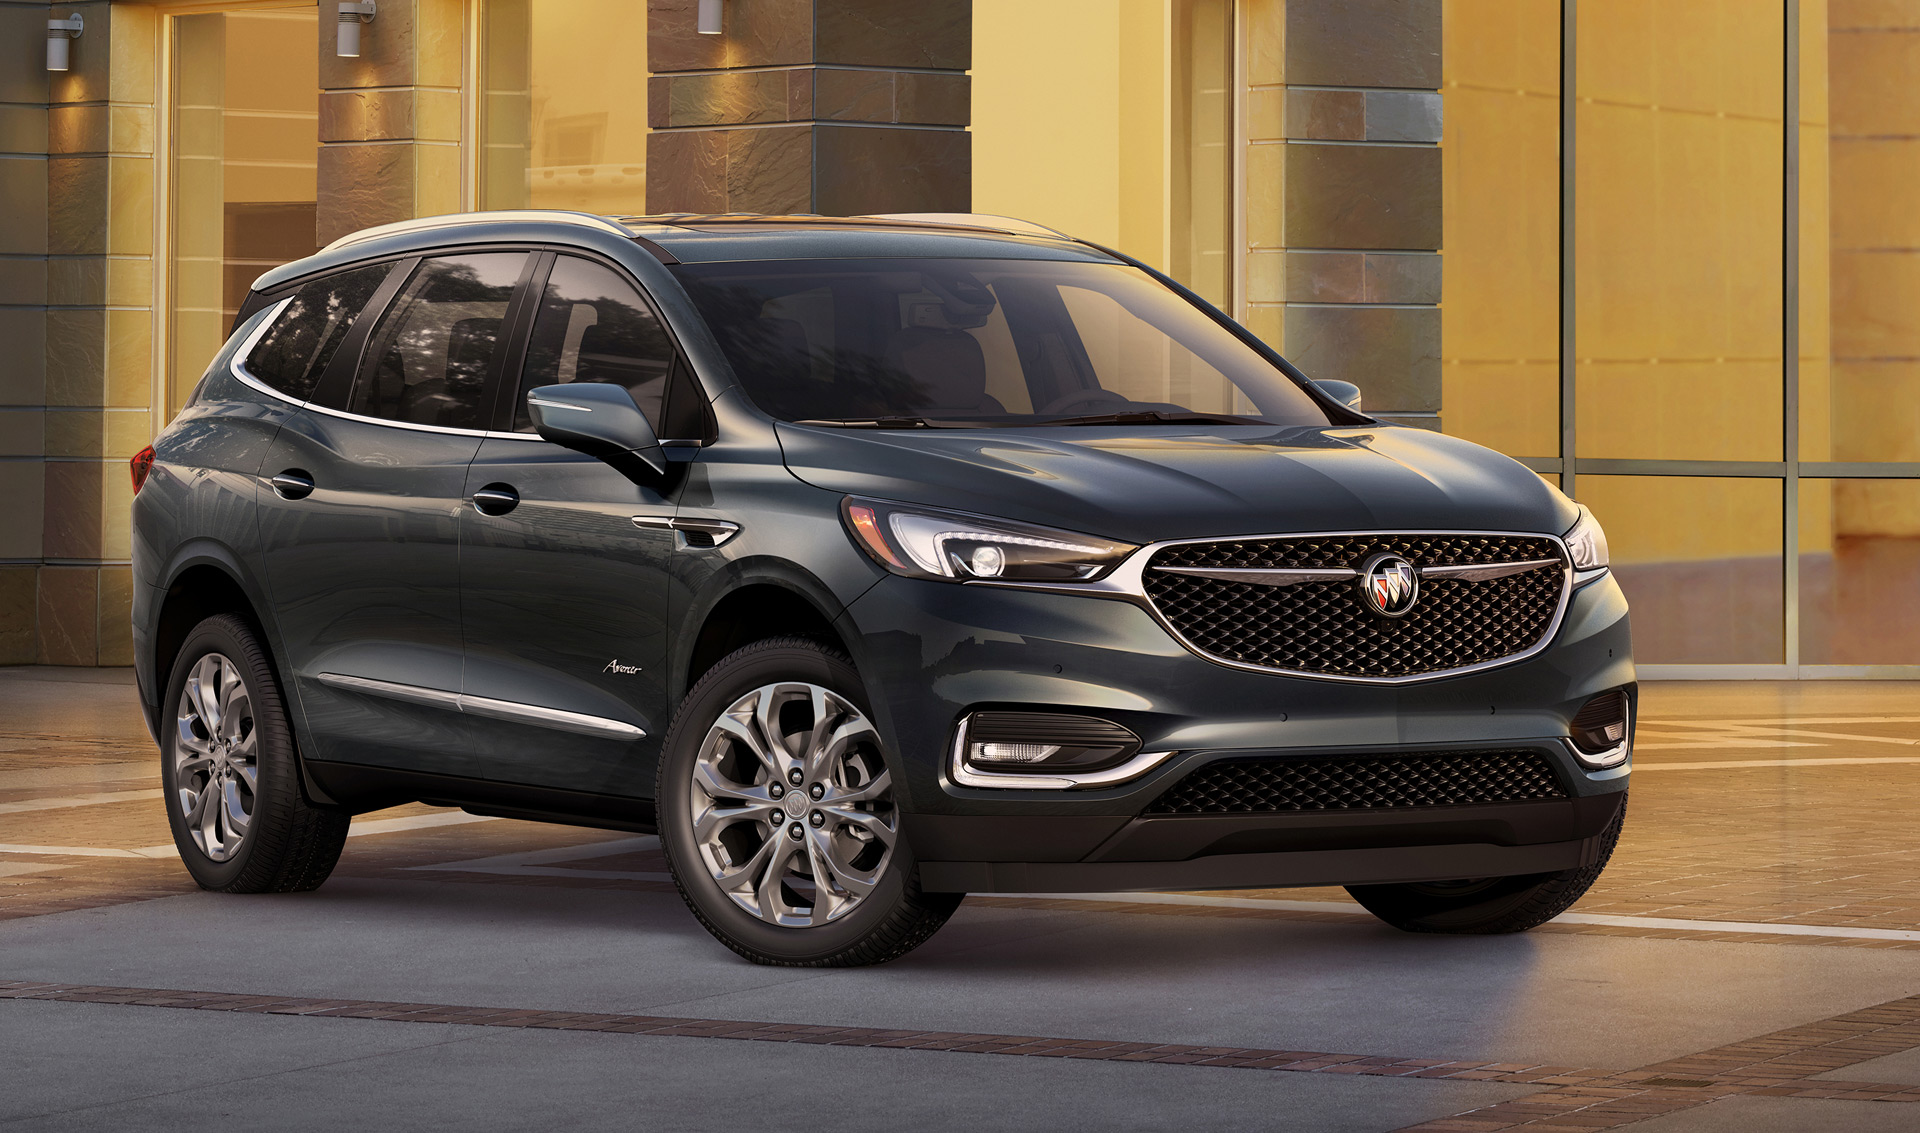 2018 Buick Enclave priced to start at $40,970